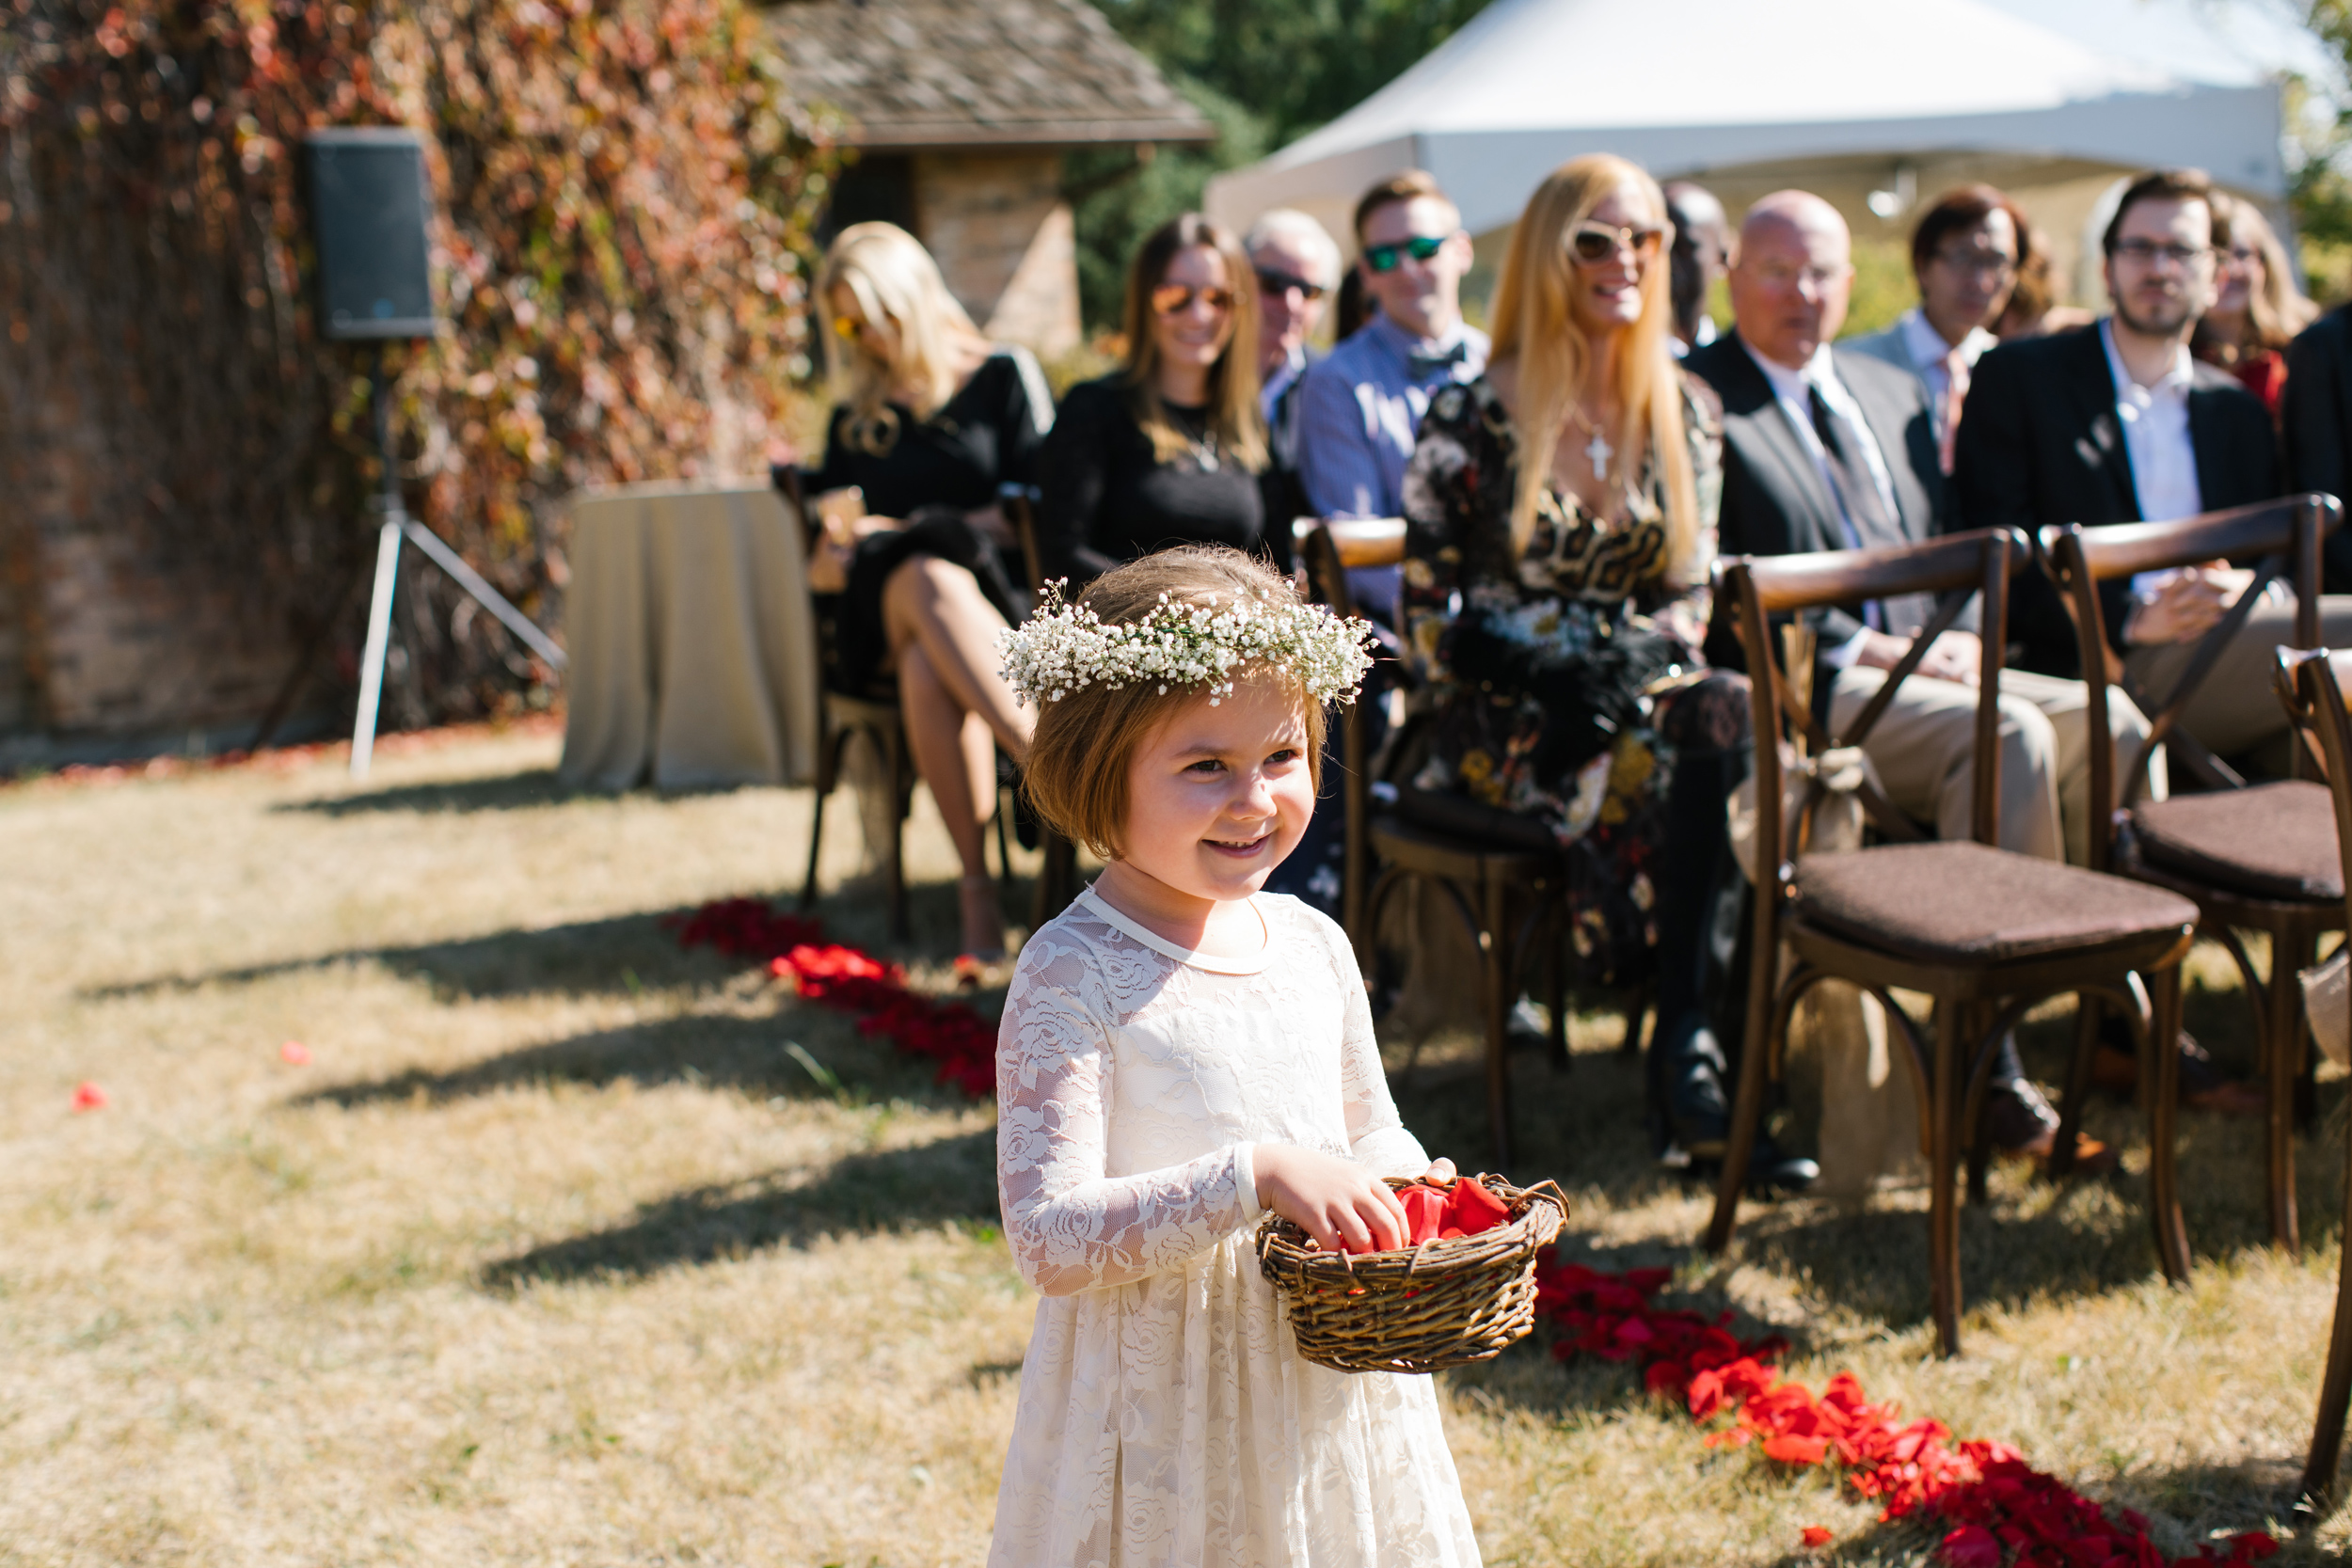 Calgary_Intimate_Backyard_Wedding0004.jpg